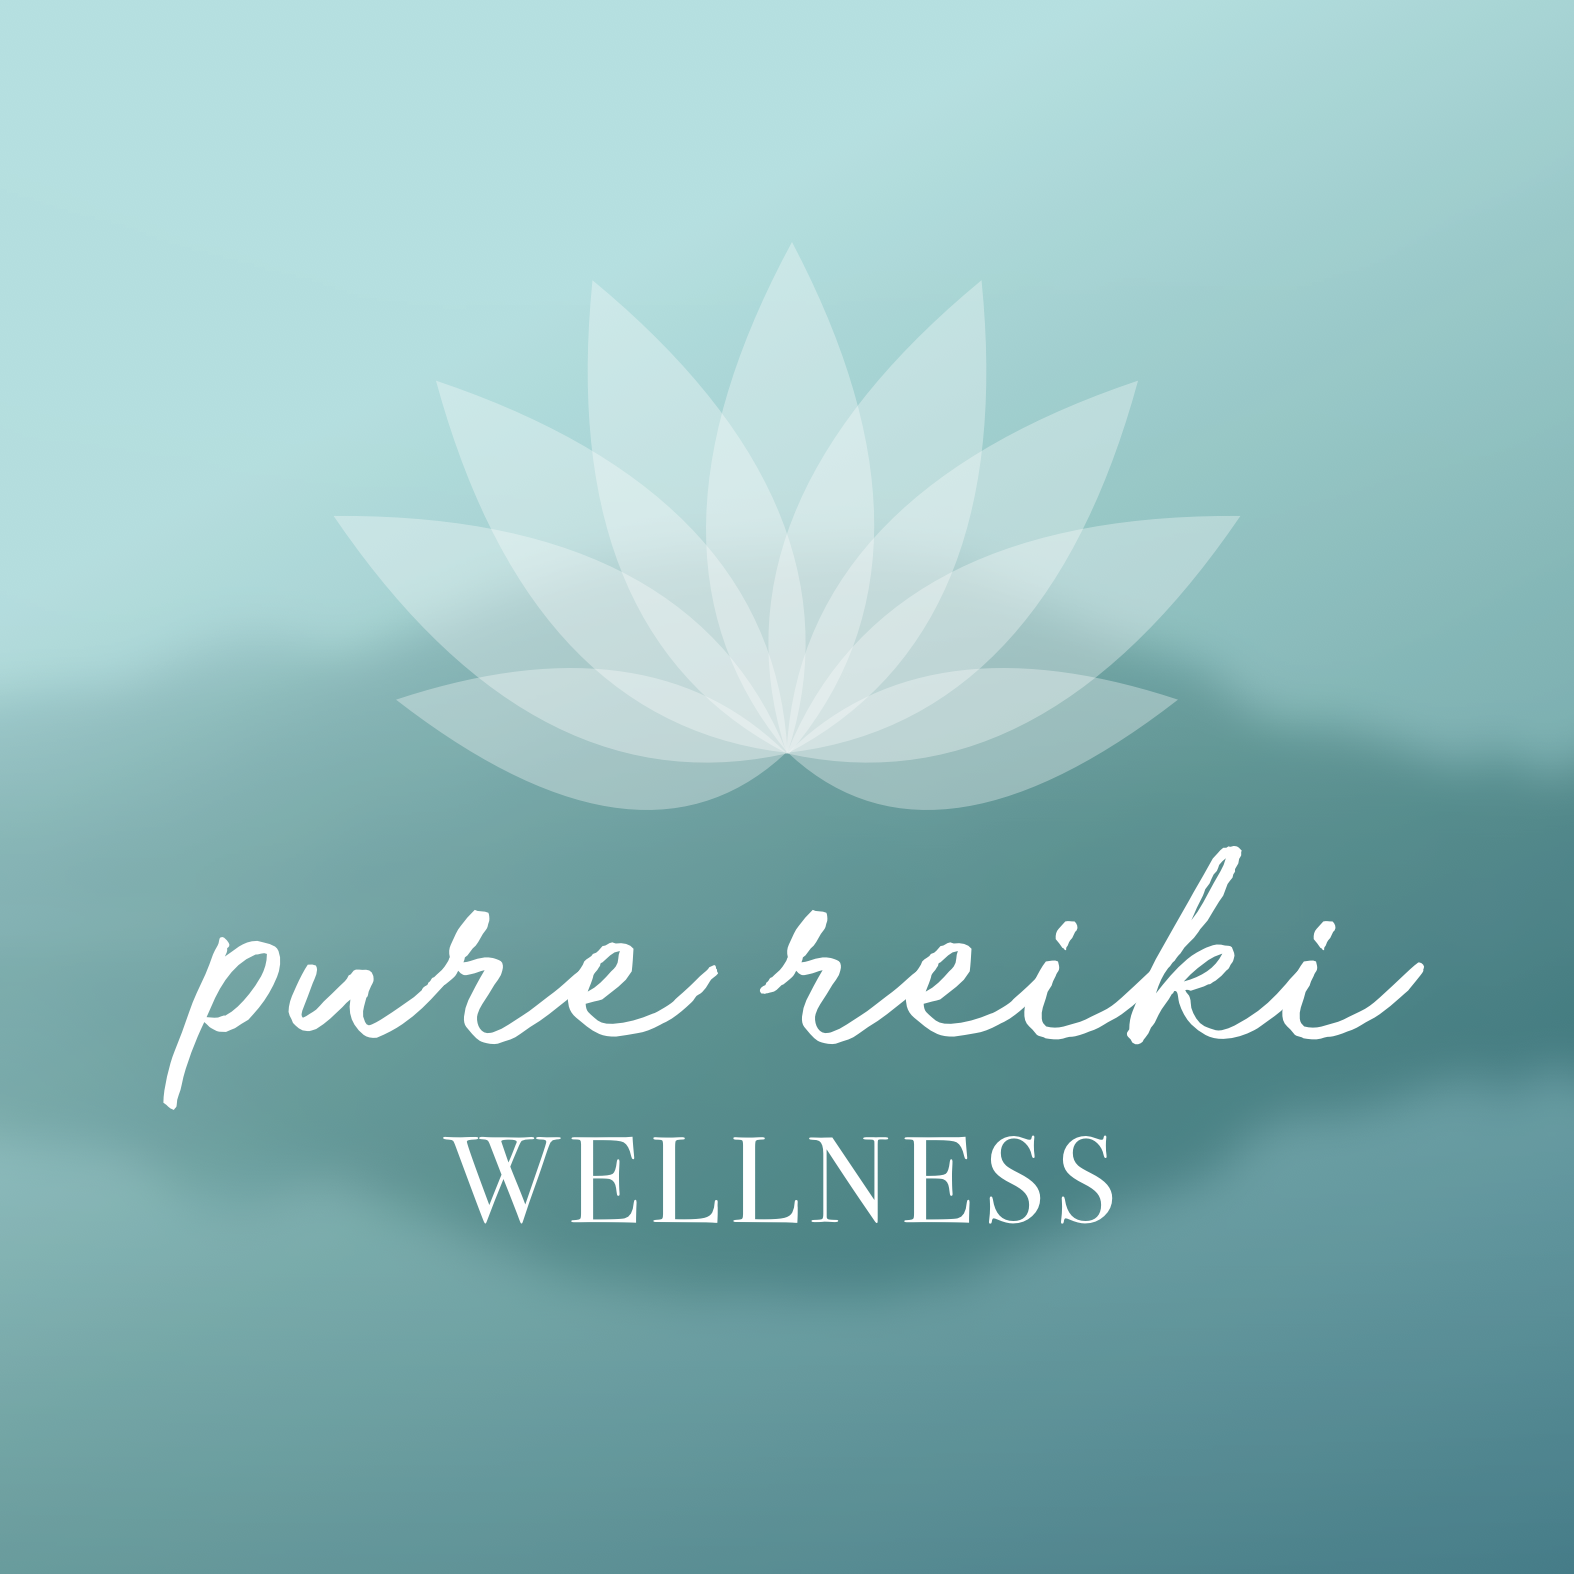 BOOK A SESSION - Book your session today. Gift certificates available.12400 SE 38th St Suite 201 Bellevue, WA 98006purereikiwellness@outlook.comwww.facebook.com/purereikiwellness